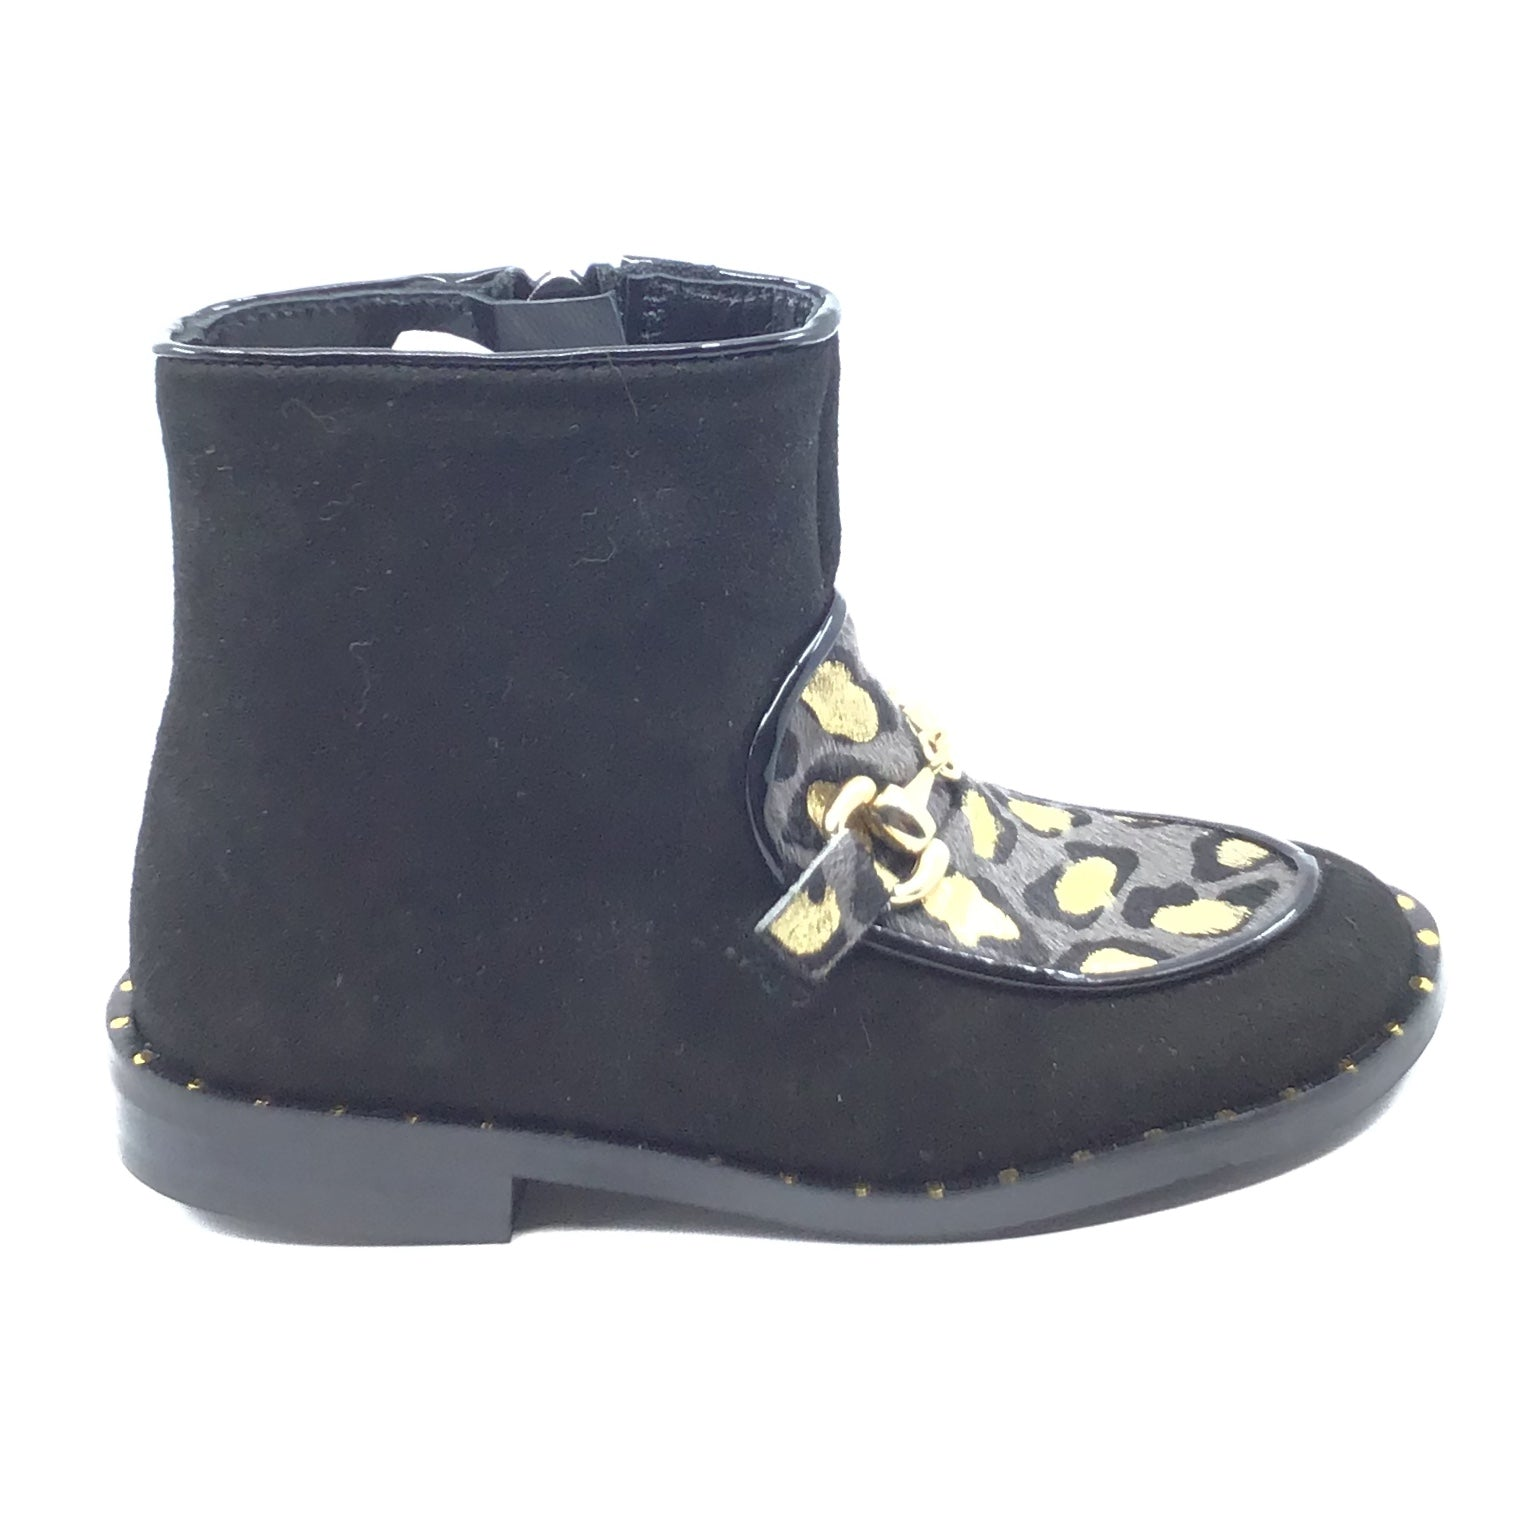 Papanatas Black Leopard Print Bootie With Chain